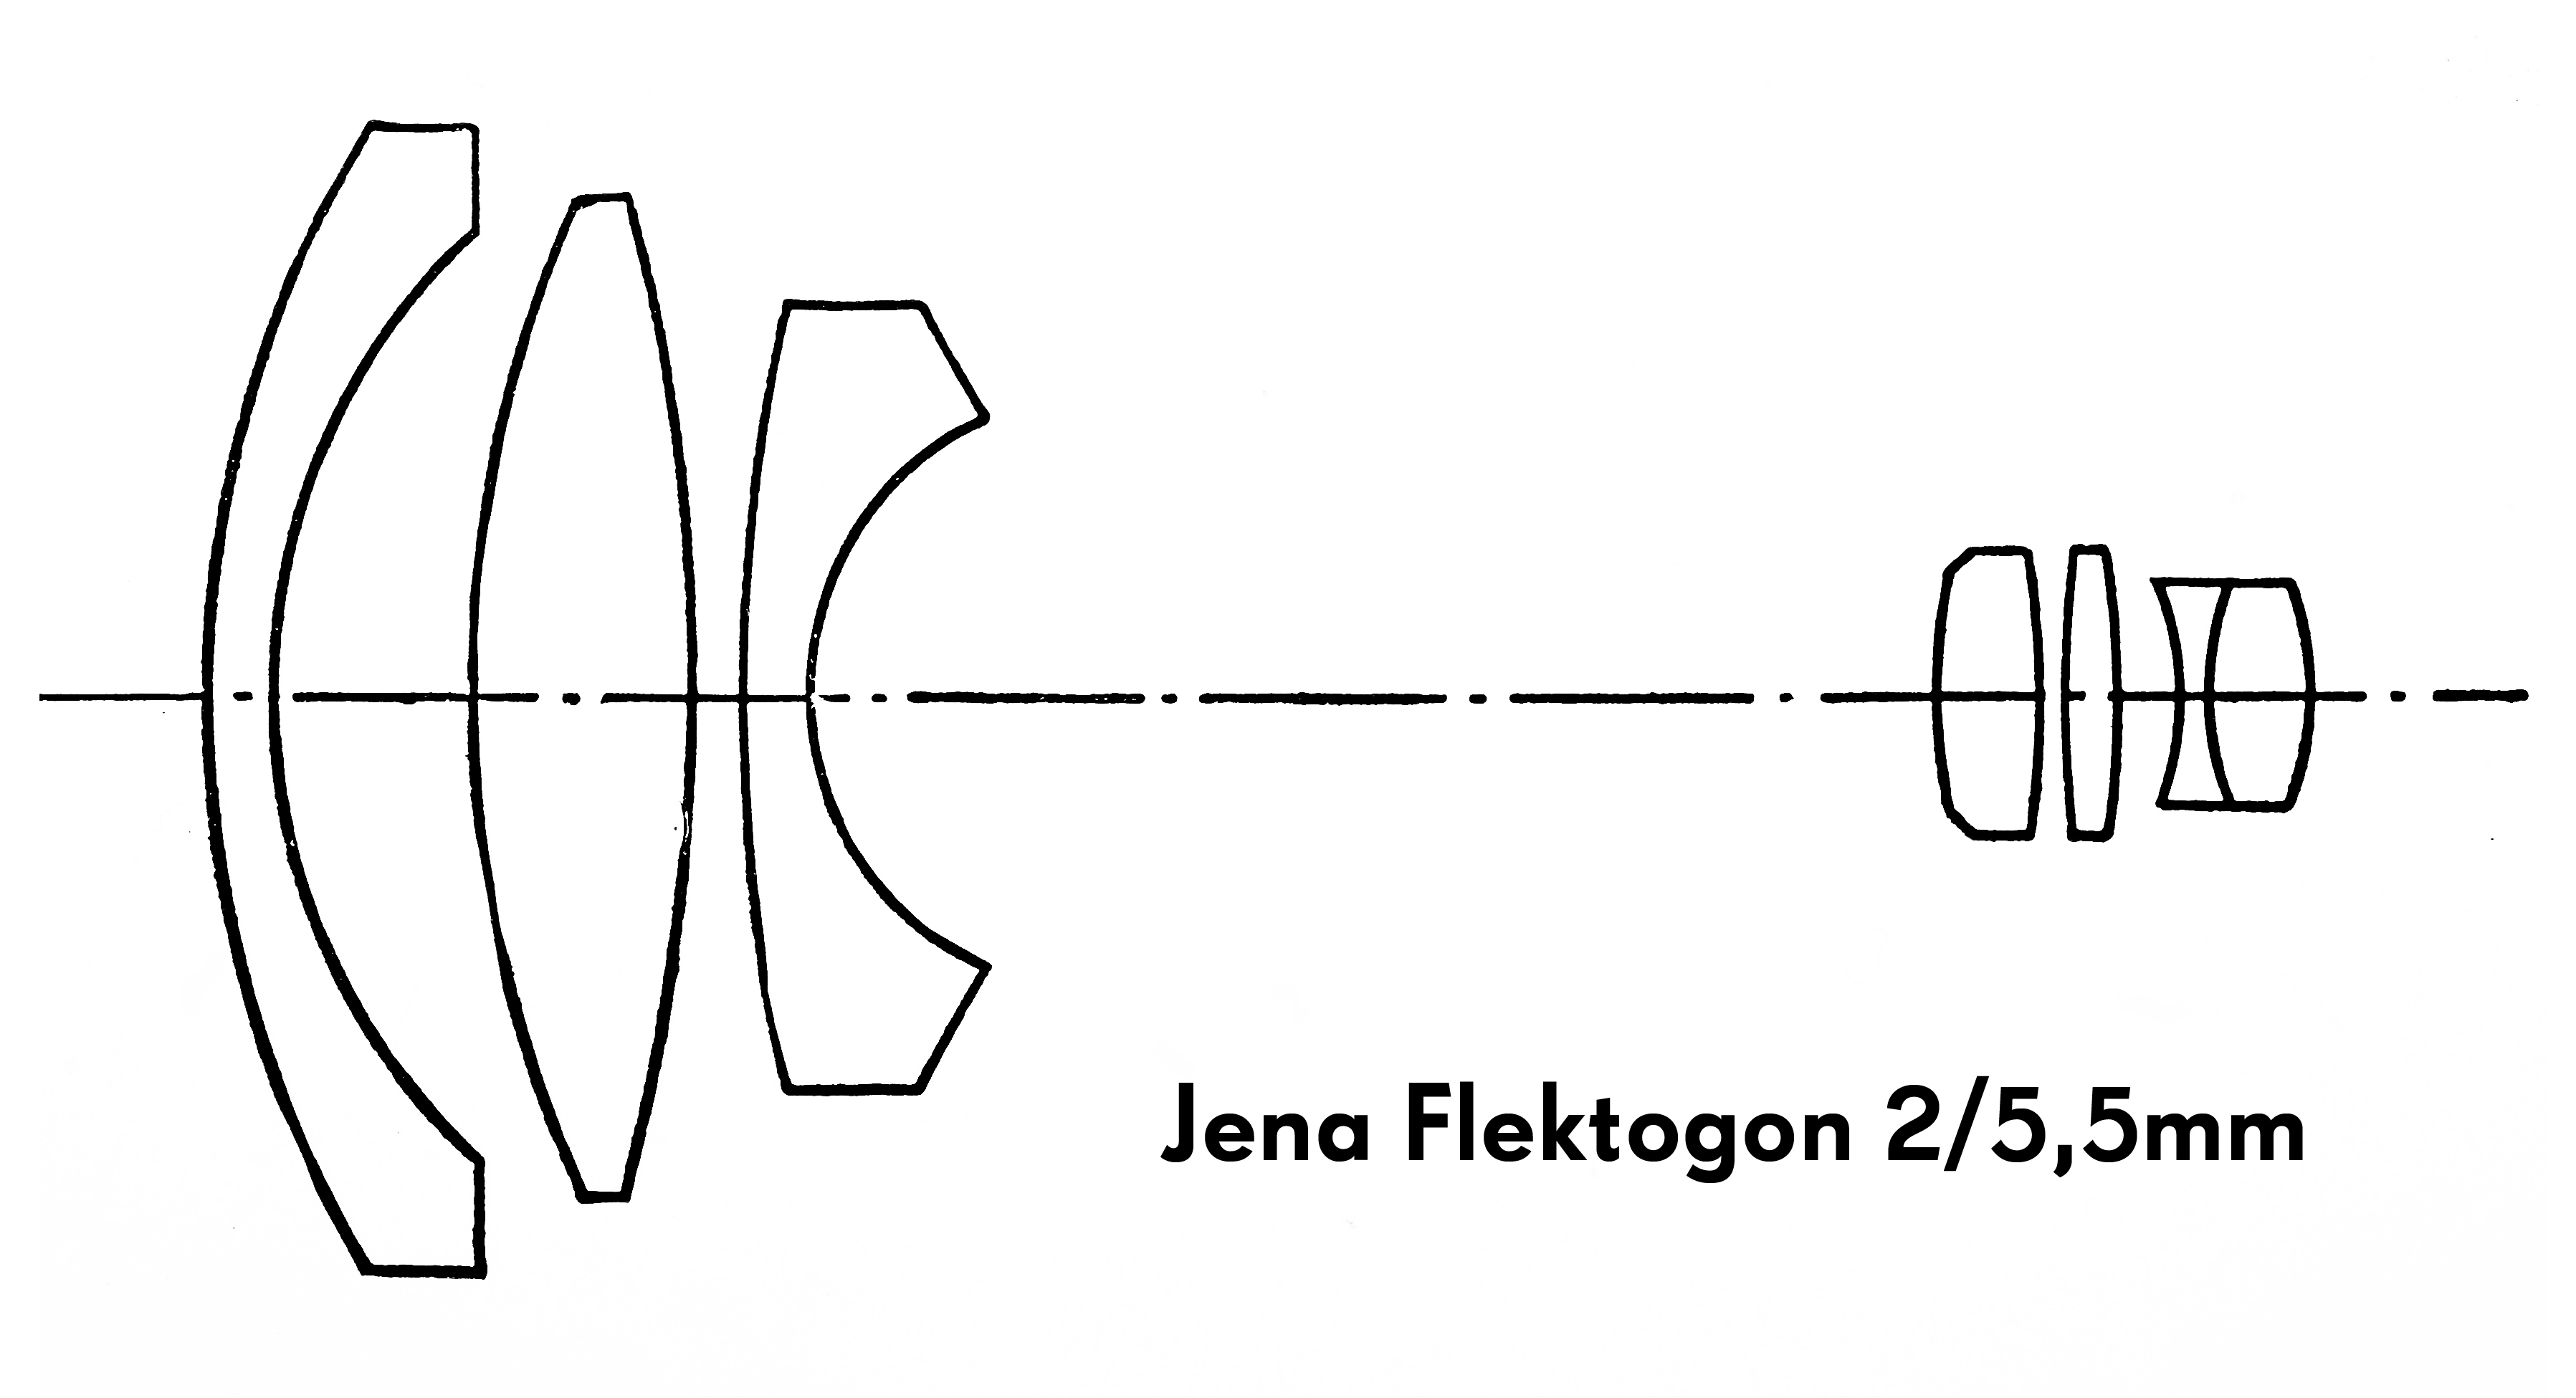 Jena Flektogon 2/5,5mm